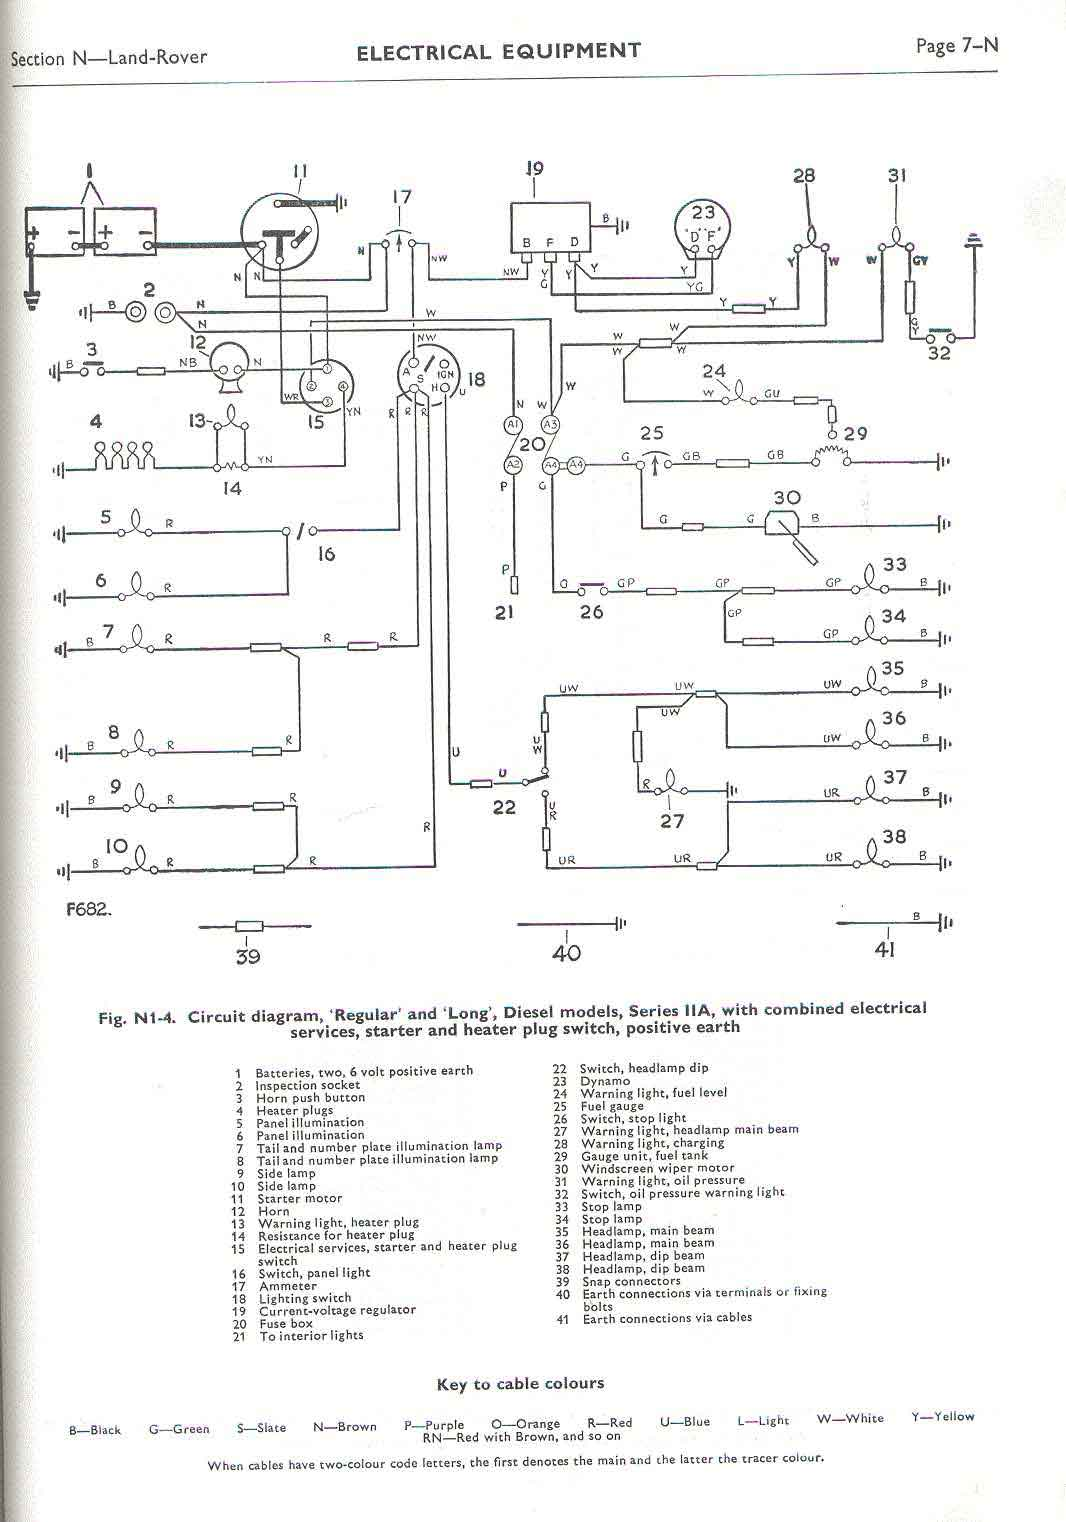 Land Rover Wiring Diagram Wire Data Schema Diagrams Faq Repair Maintenance Series Electrical Rh Lrfaq Org Colours